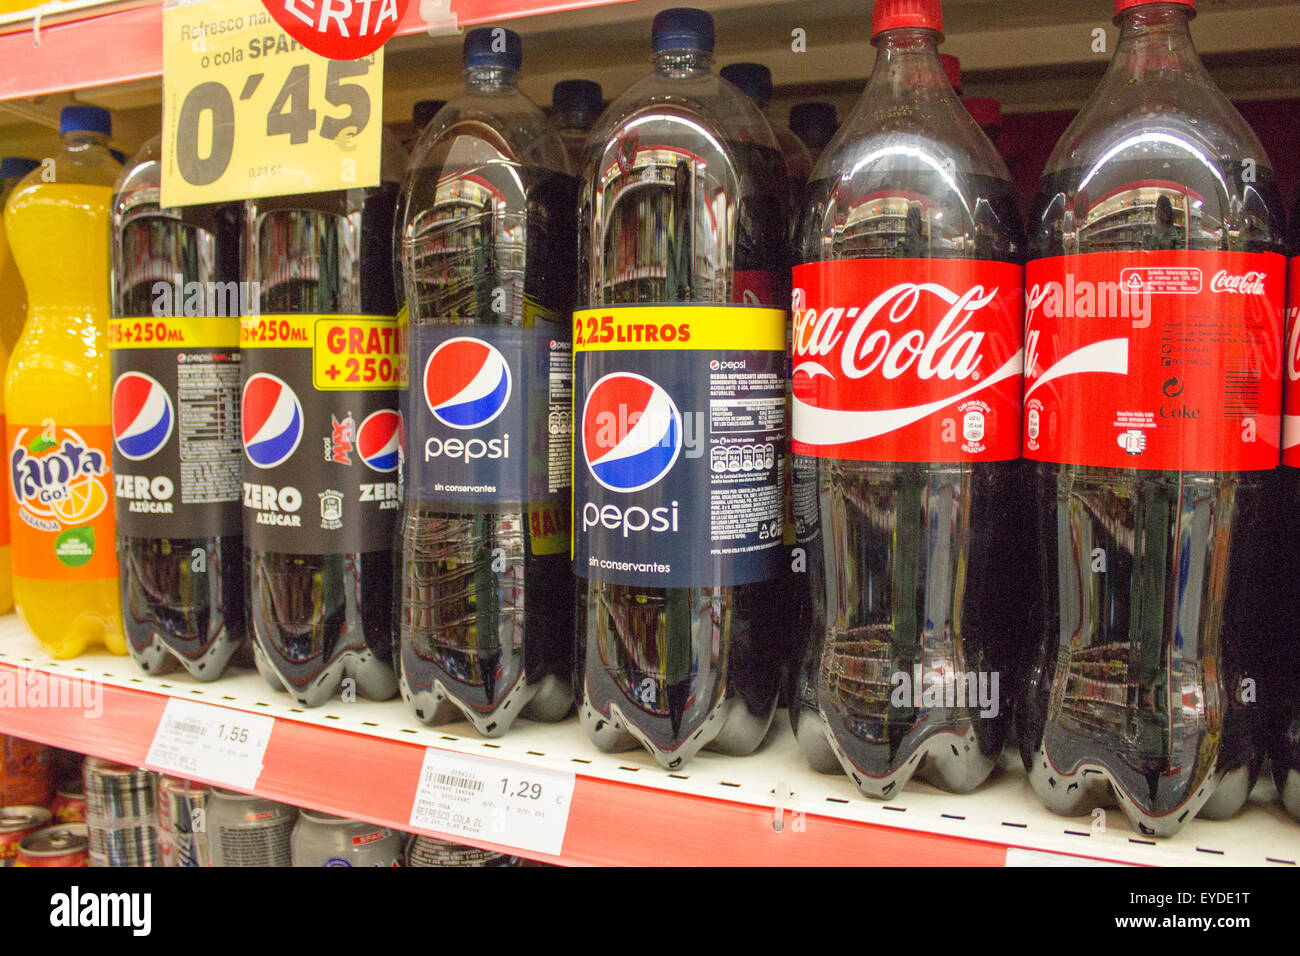 Bottles Of Coca Cola And Pepsi On Sale In La Palma Spain